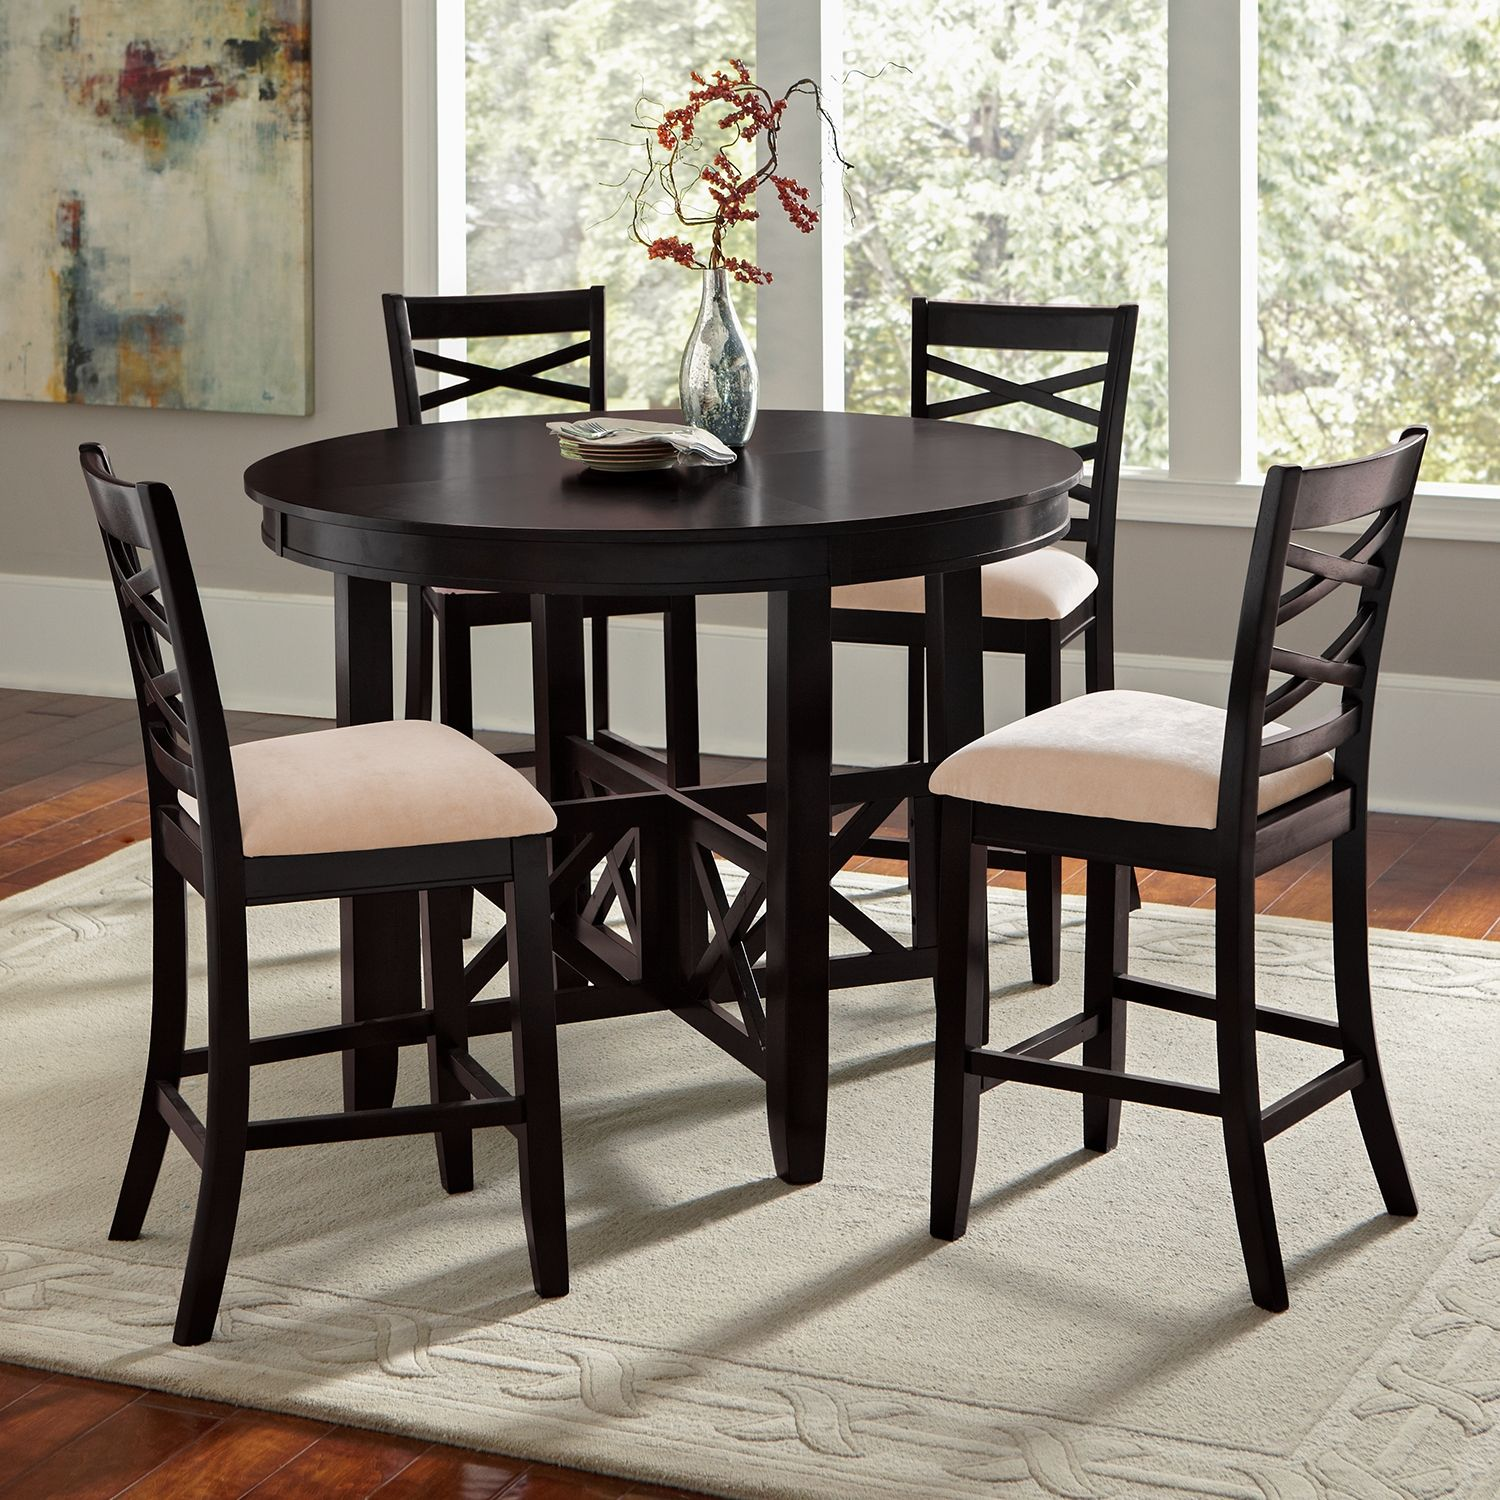 Dining Room Furniture Americana Ii 5 Pc Counter Height Dinette 400 American Signature Furniture Area Rug Dining Room Round Dining Table Dining Table